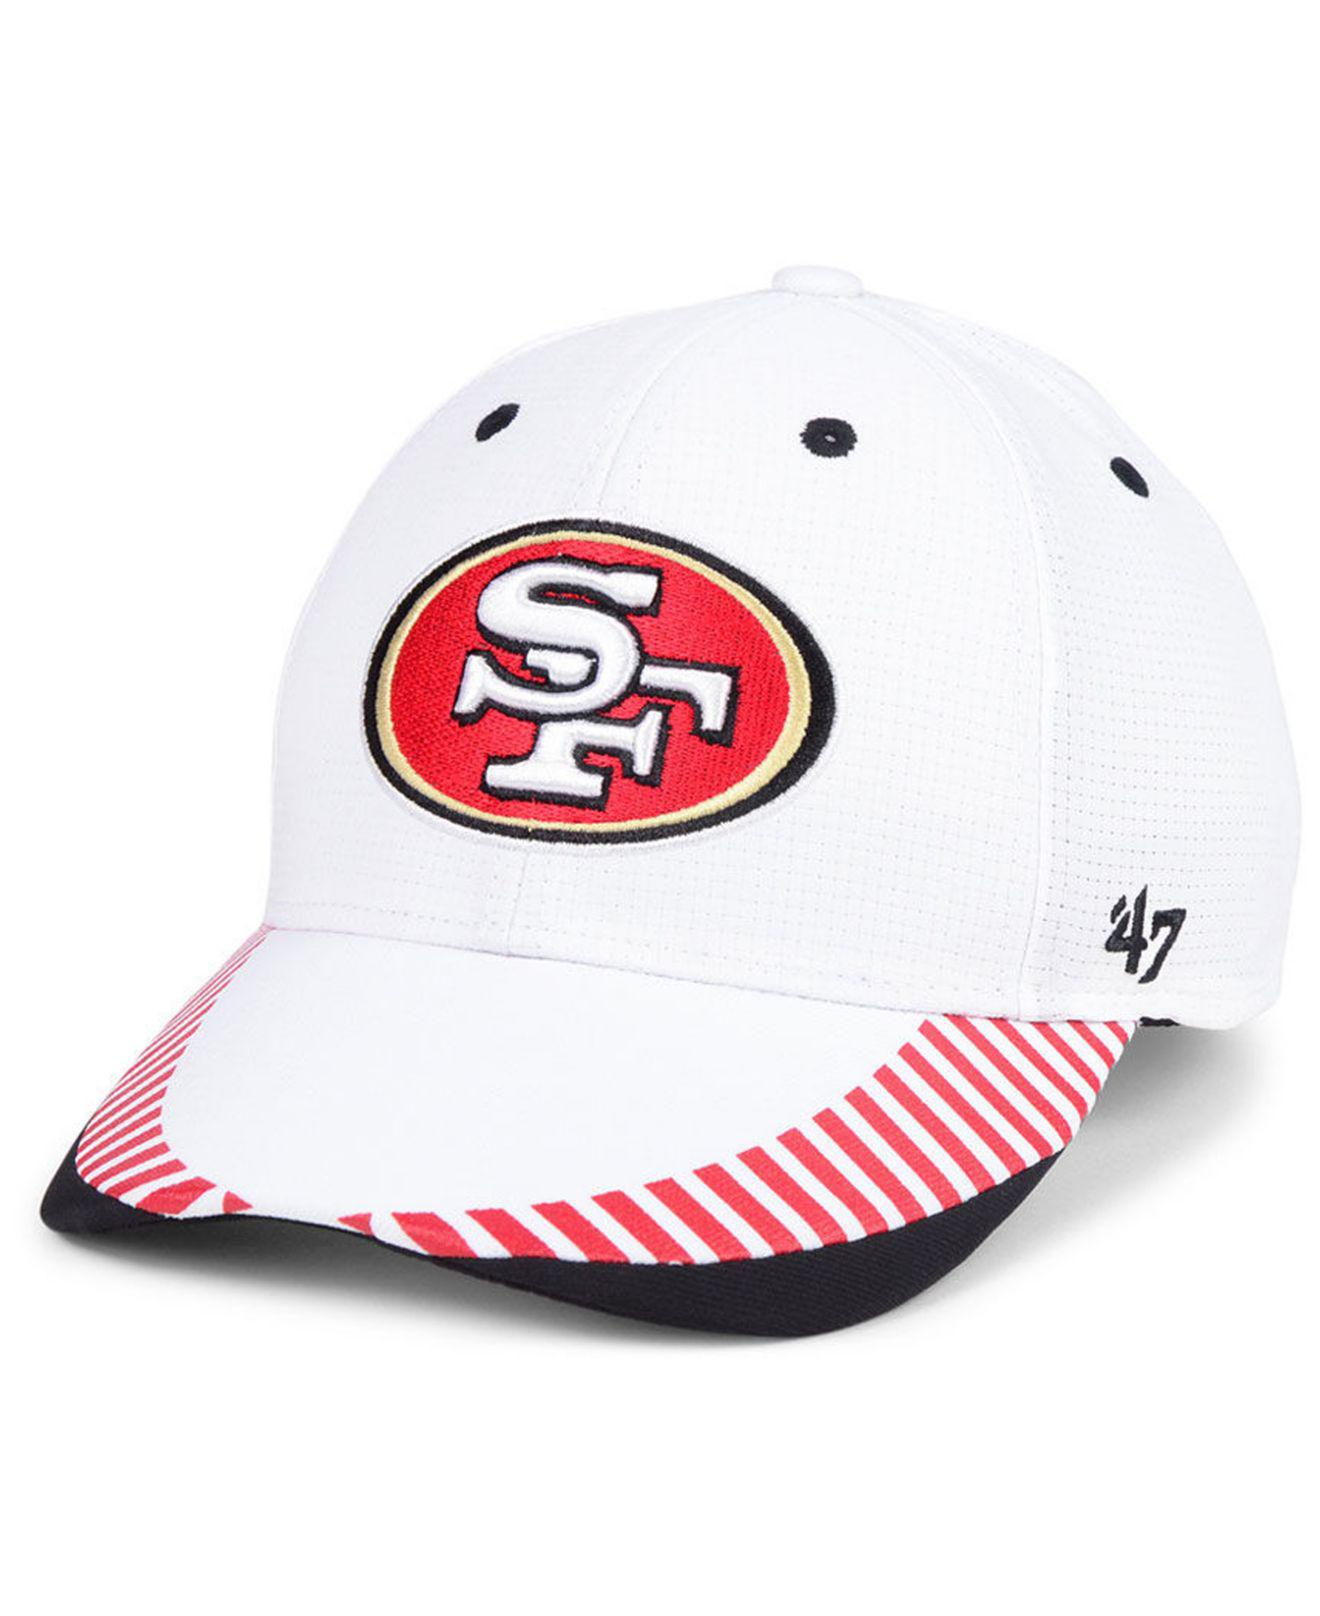 promo code 5cb26 cfb03 ... cheapest 47 brand red san francisco 49ers tantrum contender flex cap  for men lyst. view